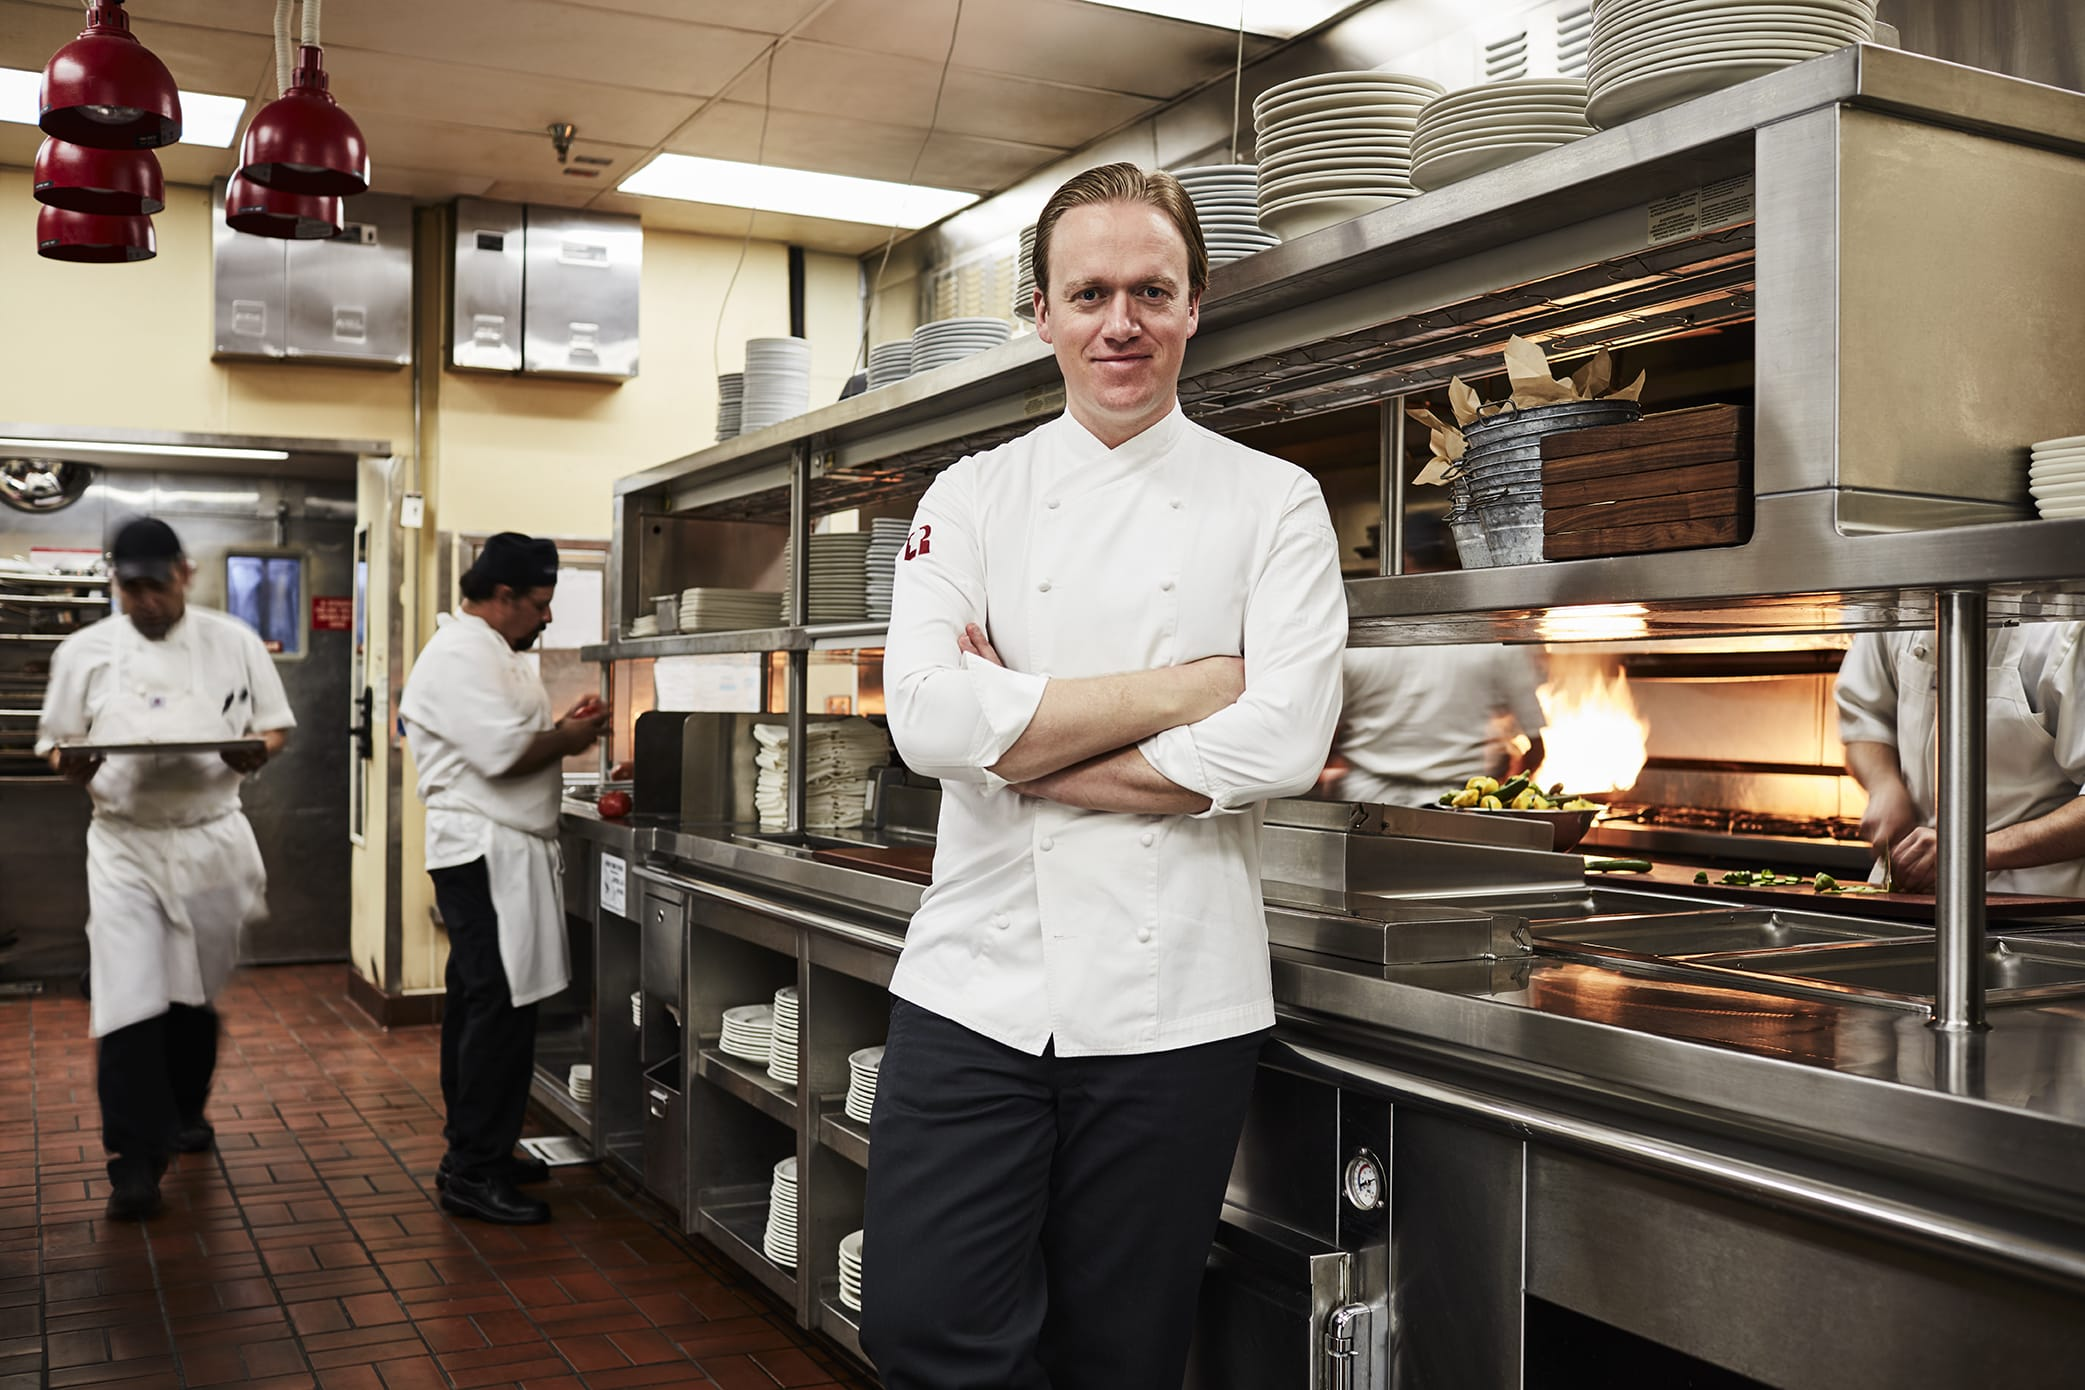 Chef and Lawry's CEO Ryan Wilson